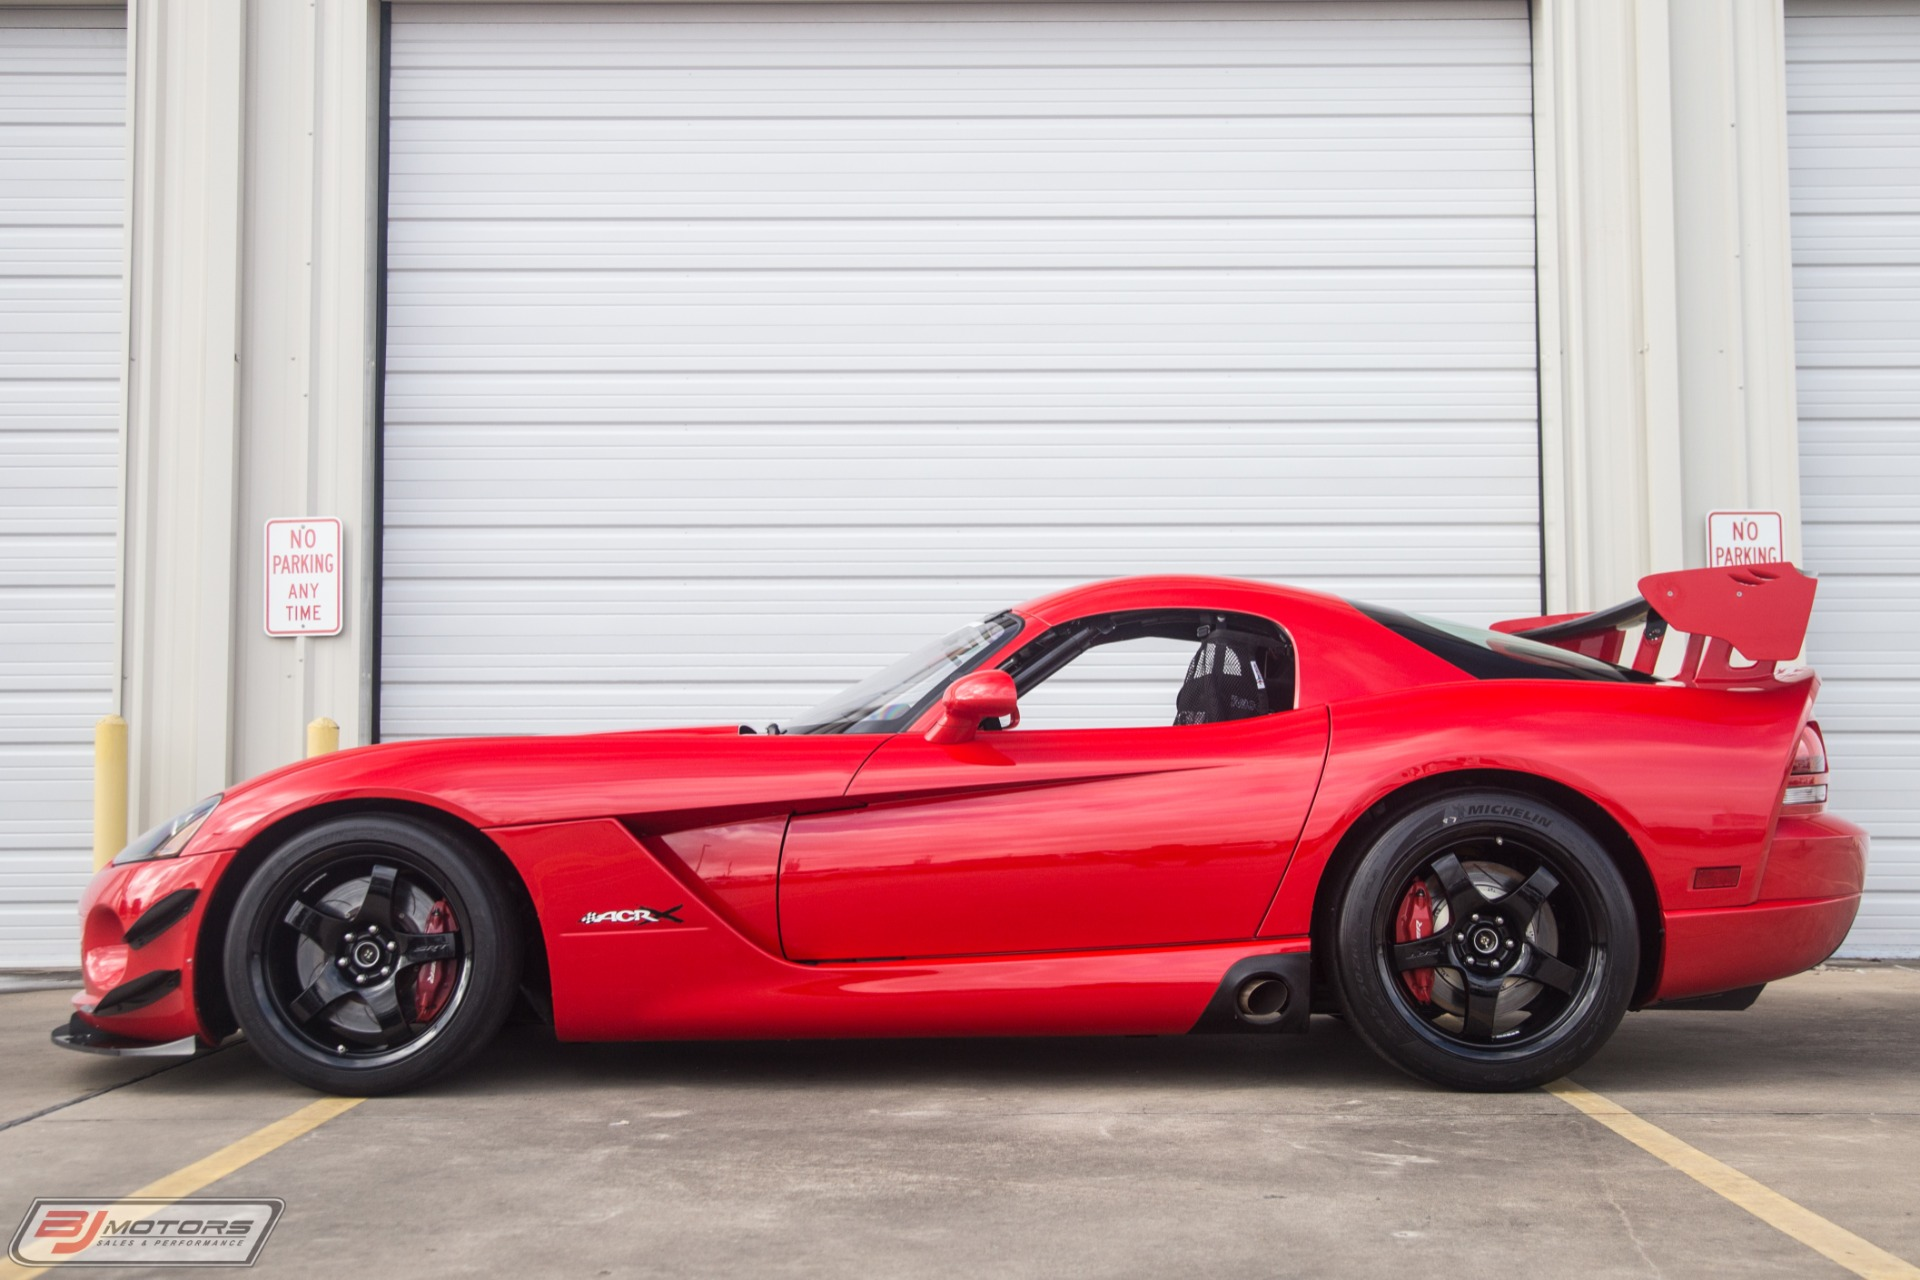 Used-2010-Dodge-Viper-The-Nurburgring-ACR-X-46